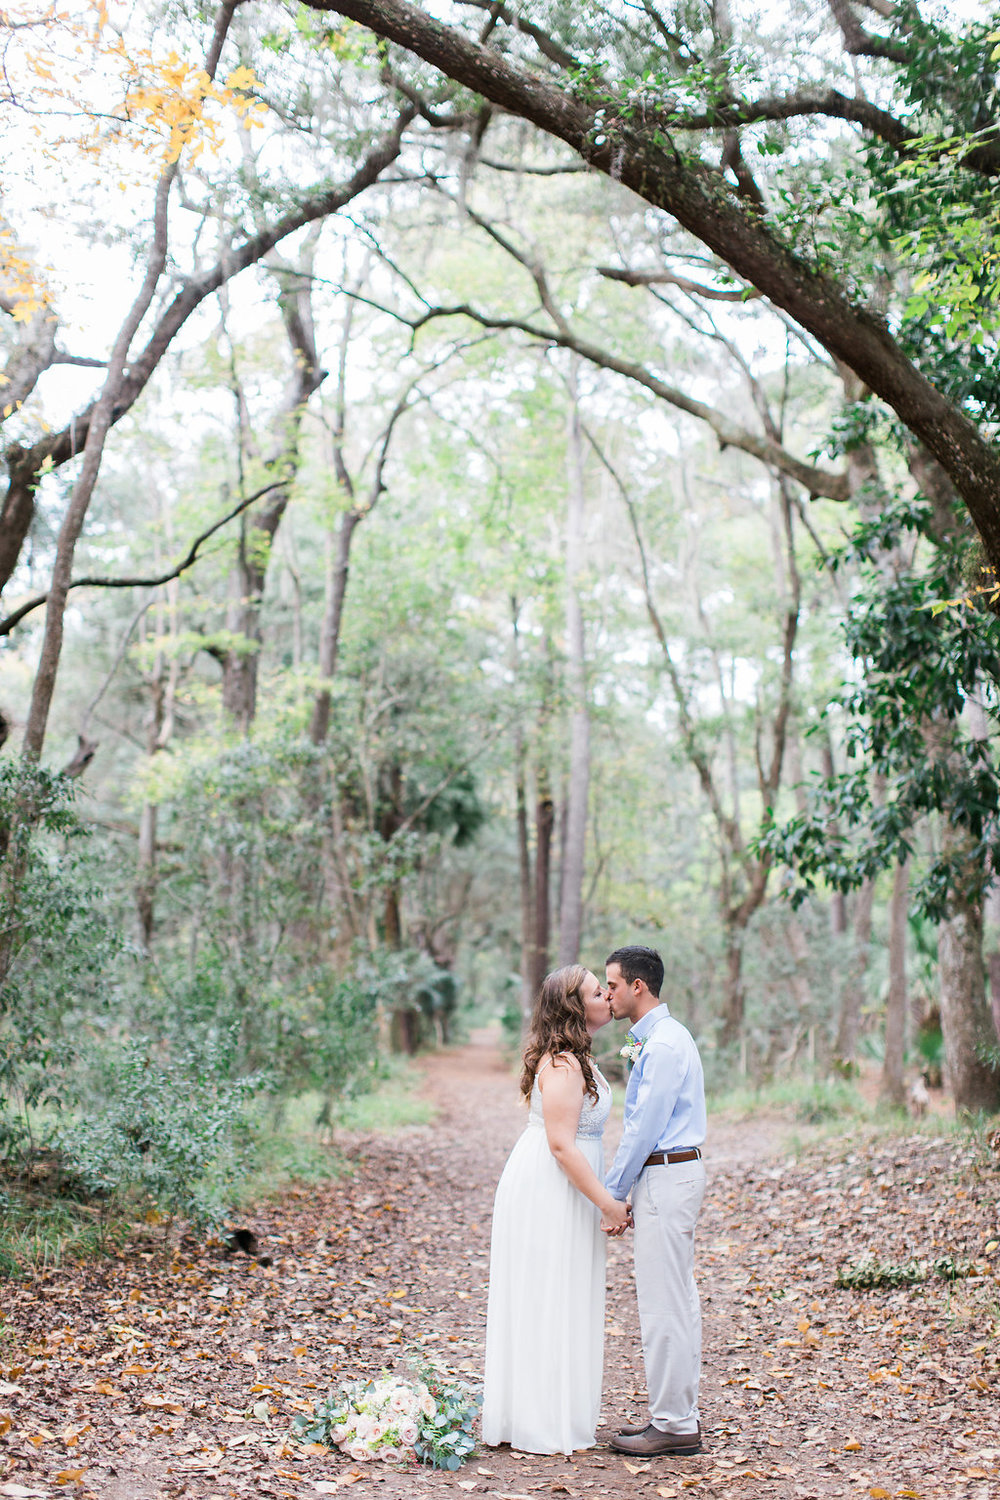 Savannah_Wedding_Photography_AptBPhotography_Elopements452.JPG